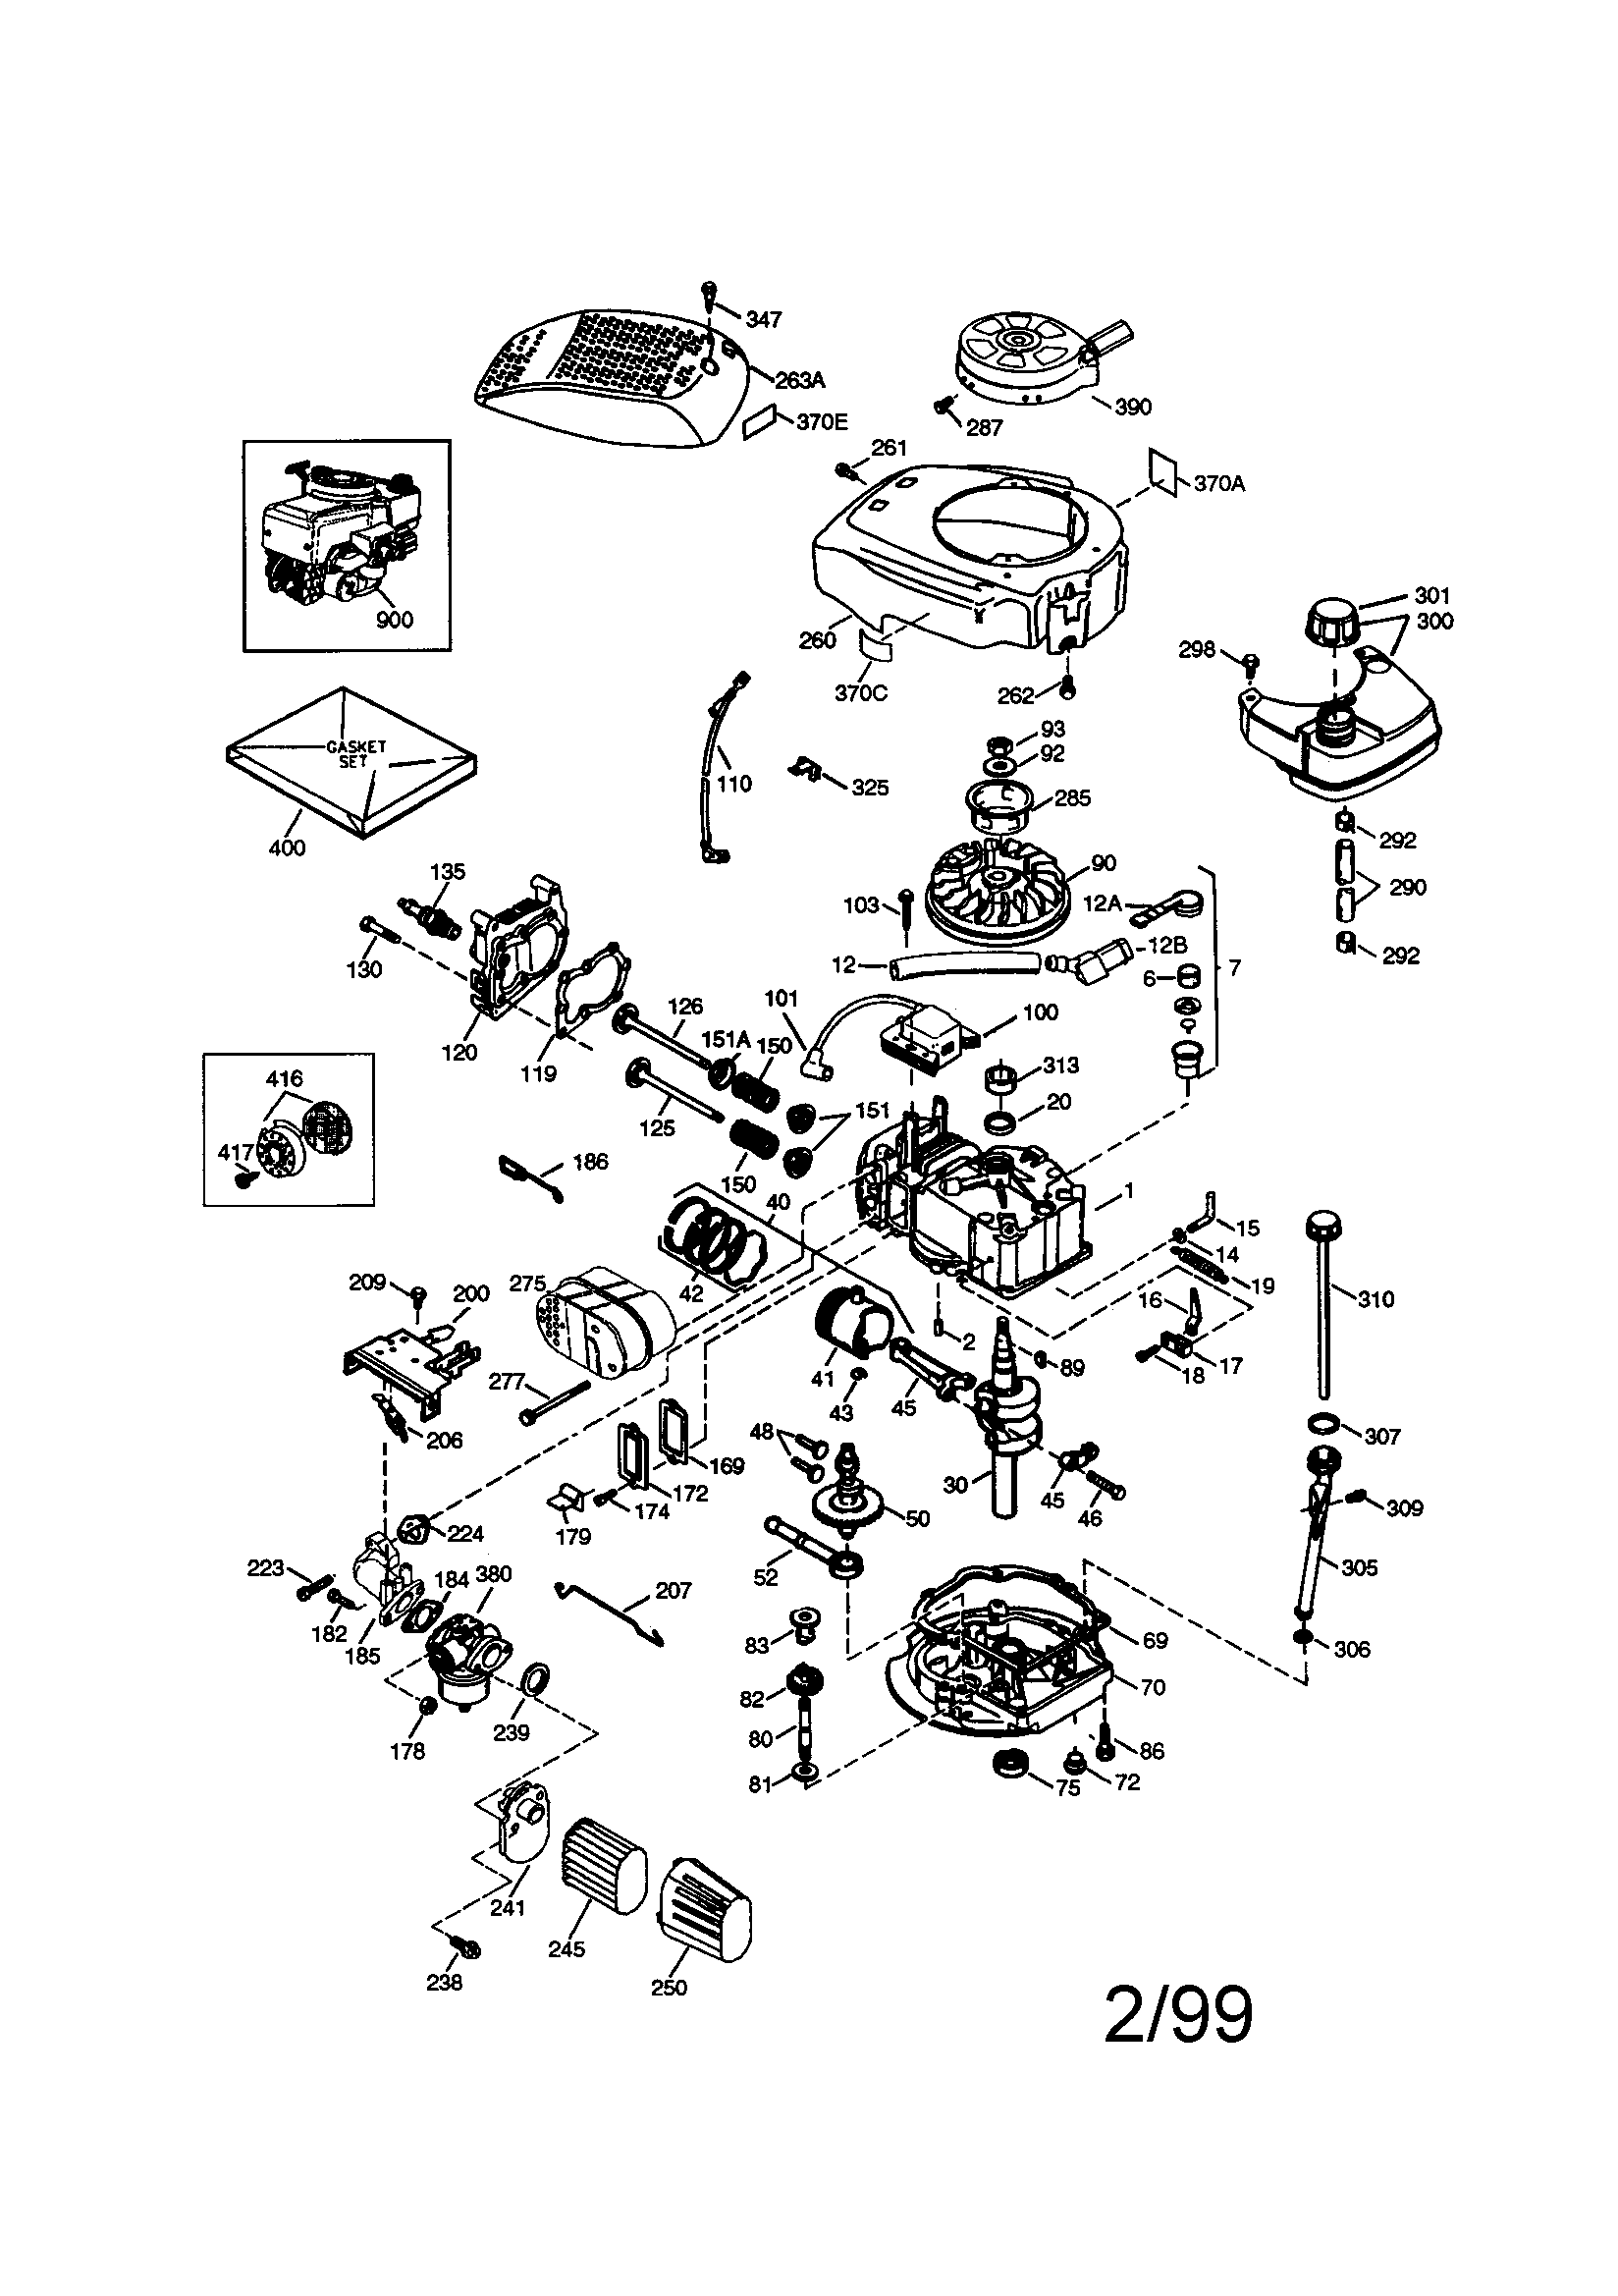 tecumseh 6 5 hp engine diagram 36 volt golf cart battery wiring craftsman parts model 143996516 sears partsdirect